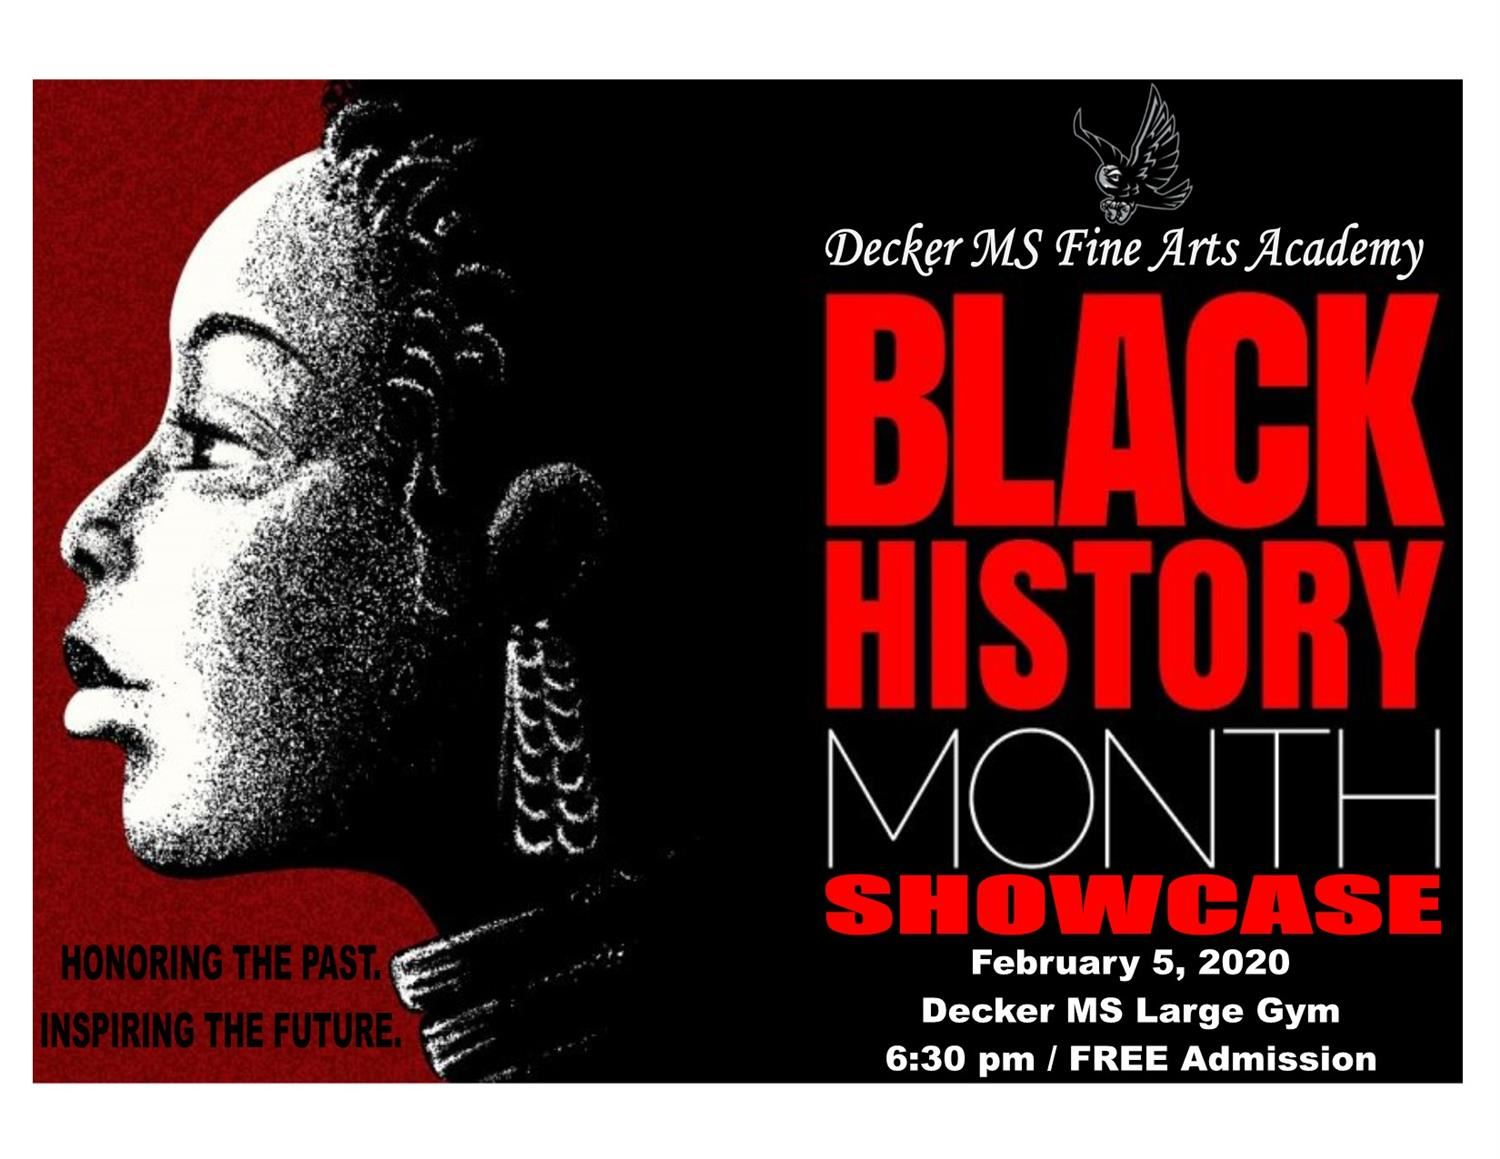 Decker MS Fine Arts Academy Black History Month Showcase